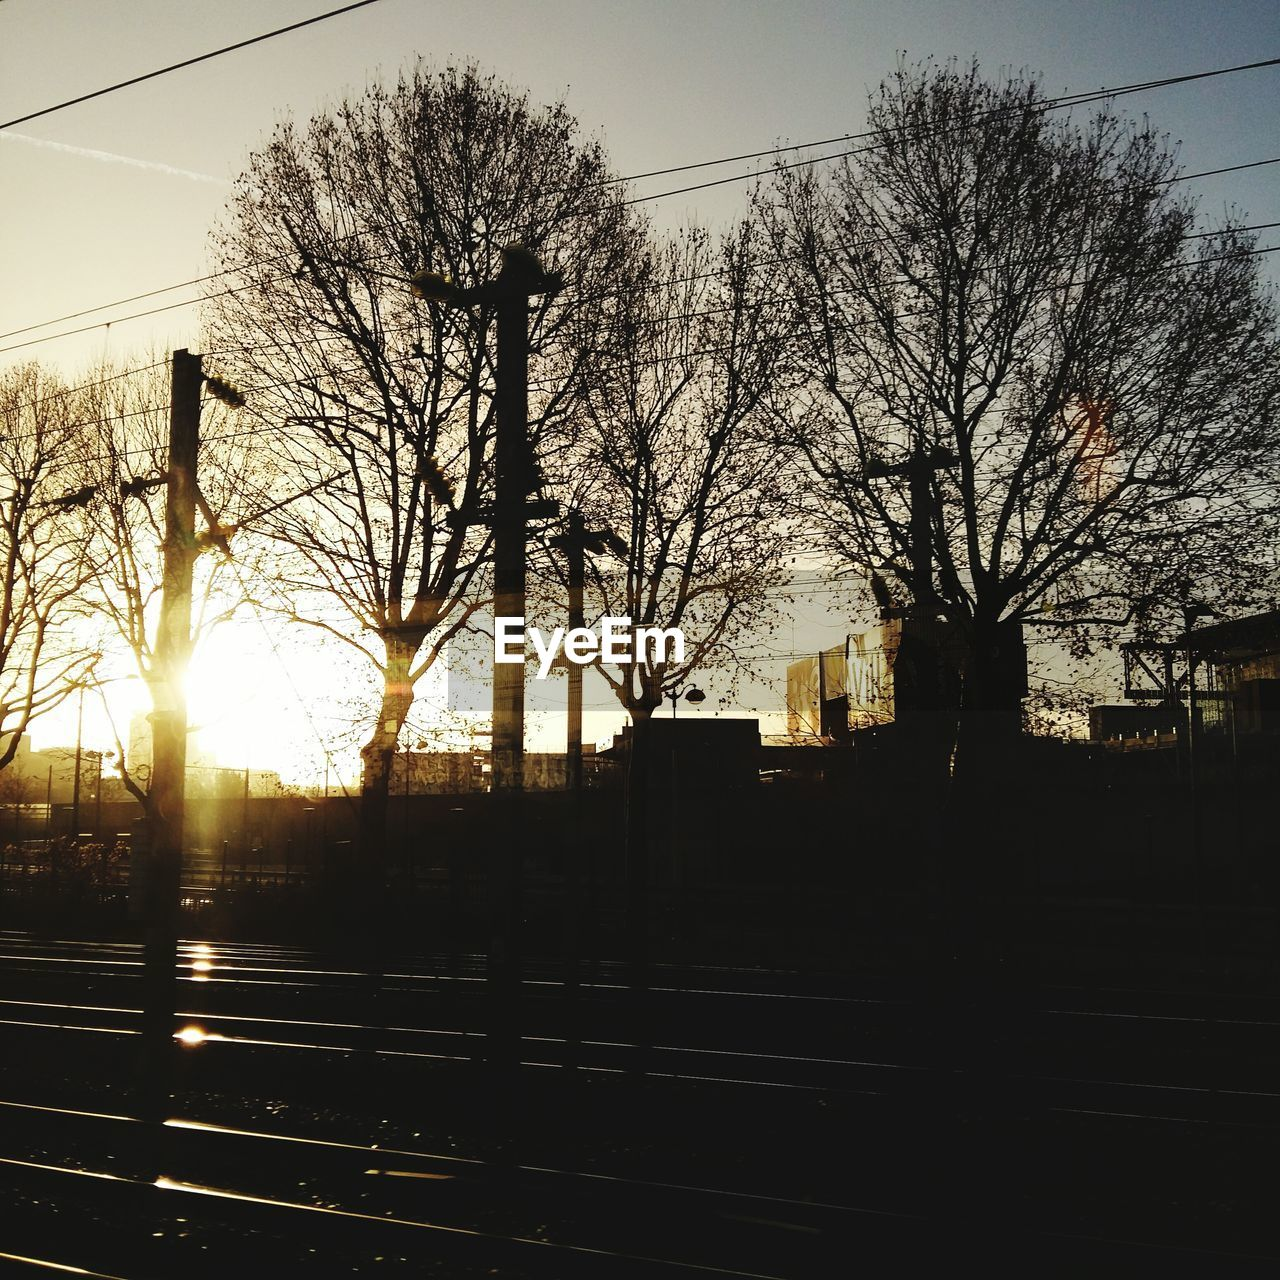 bare tree, tree, silhouette, sky, no people, outdoors, railroad track, transportation, sunset, clear sky, nature, day, architecture